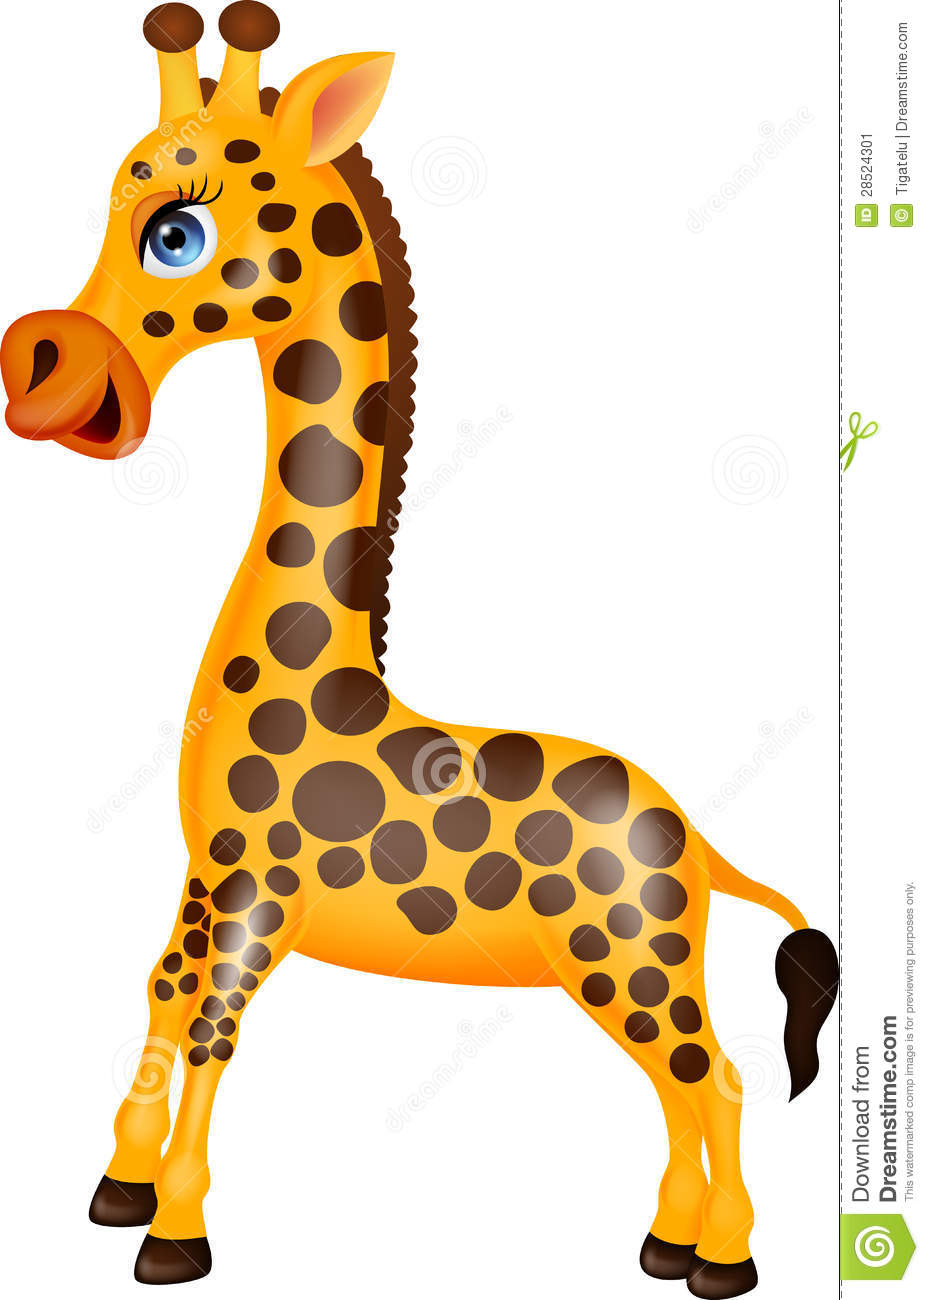 Illustration of funny Giraffe cartoon character.